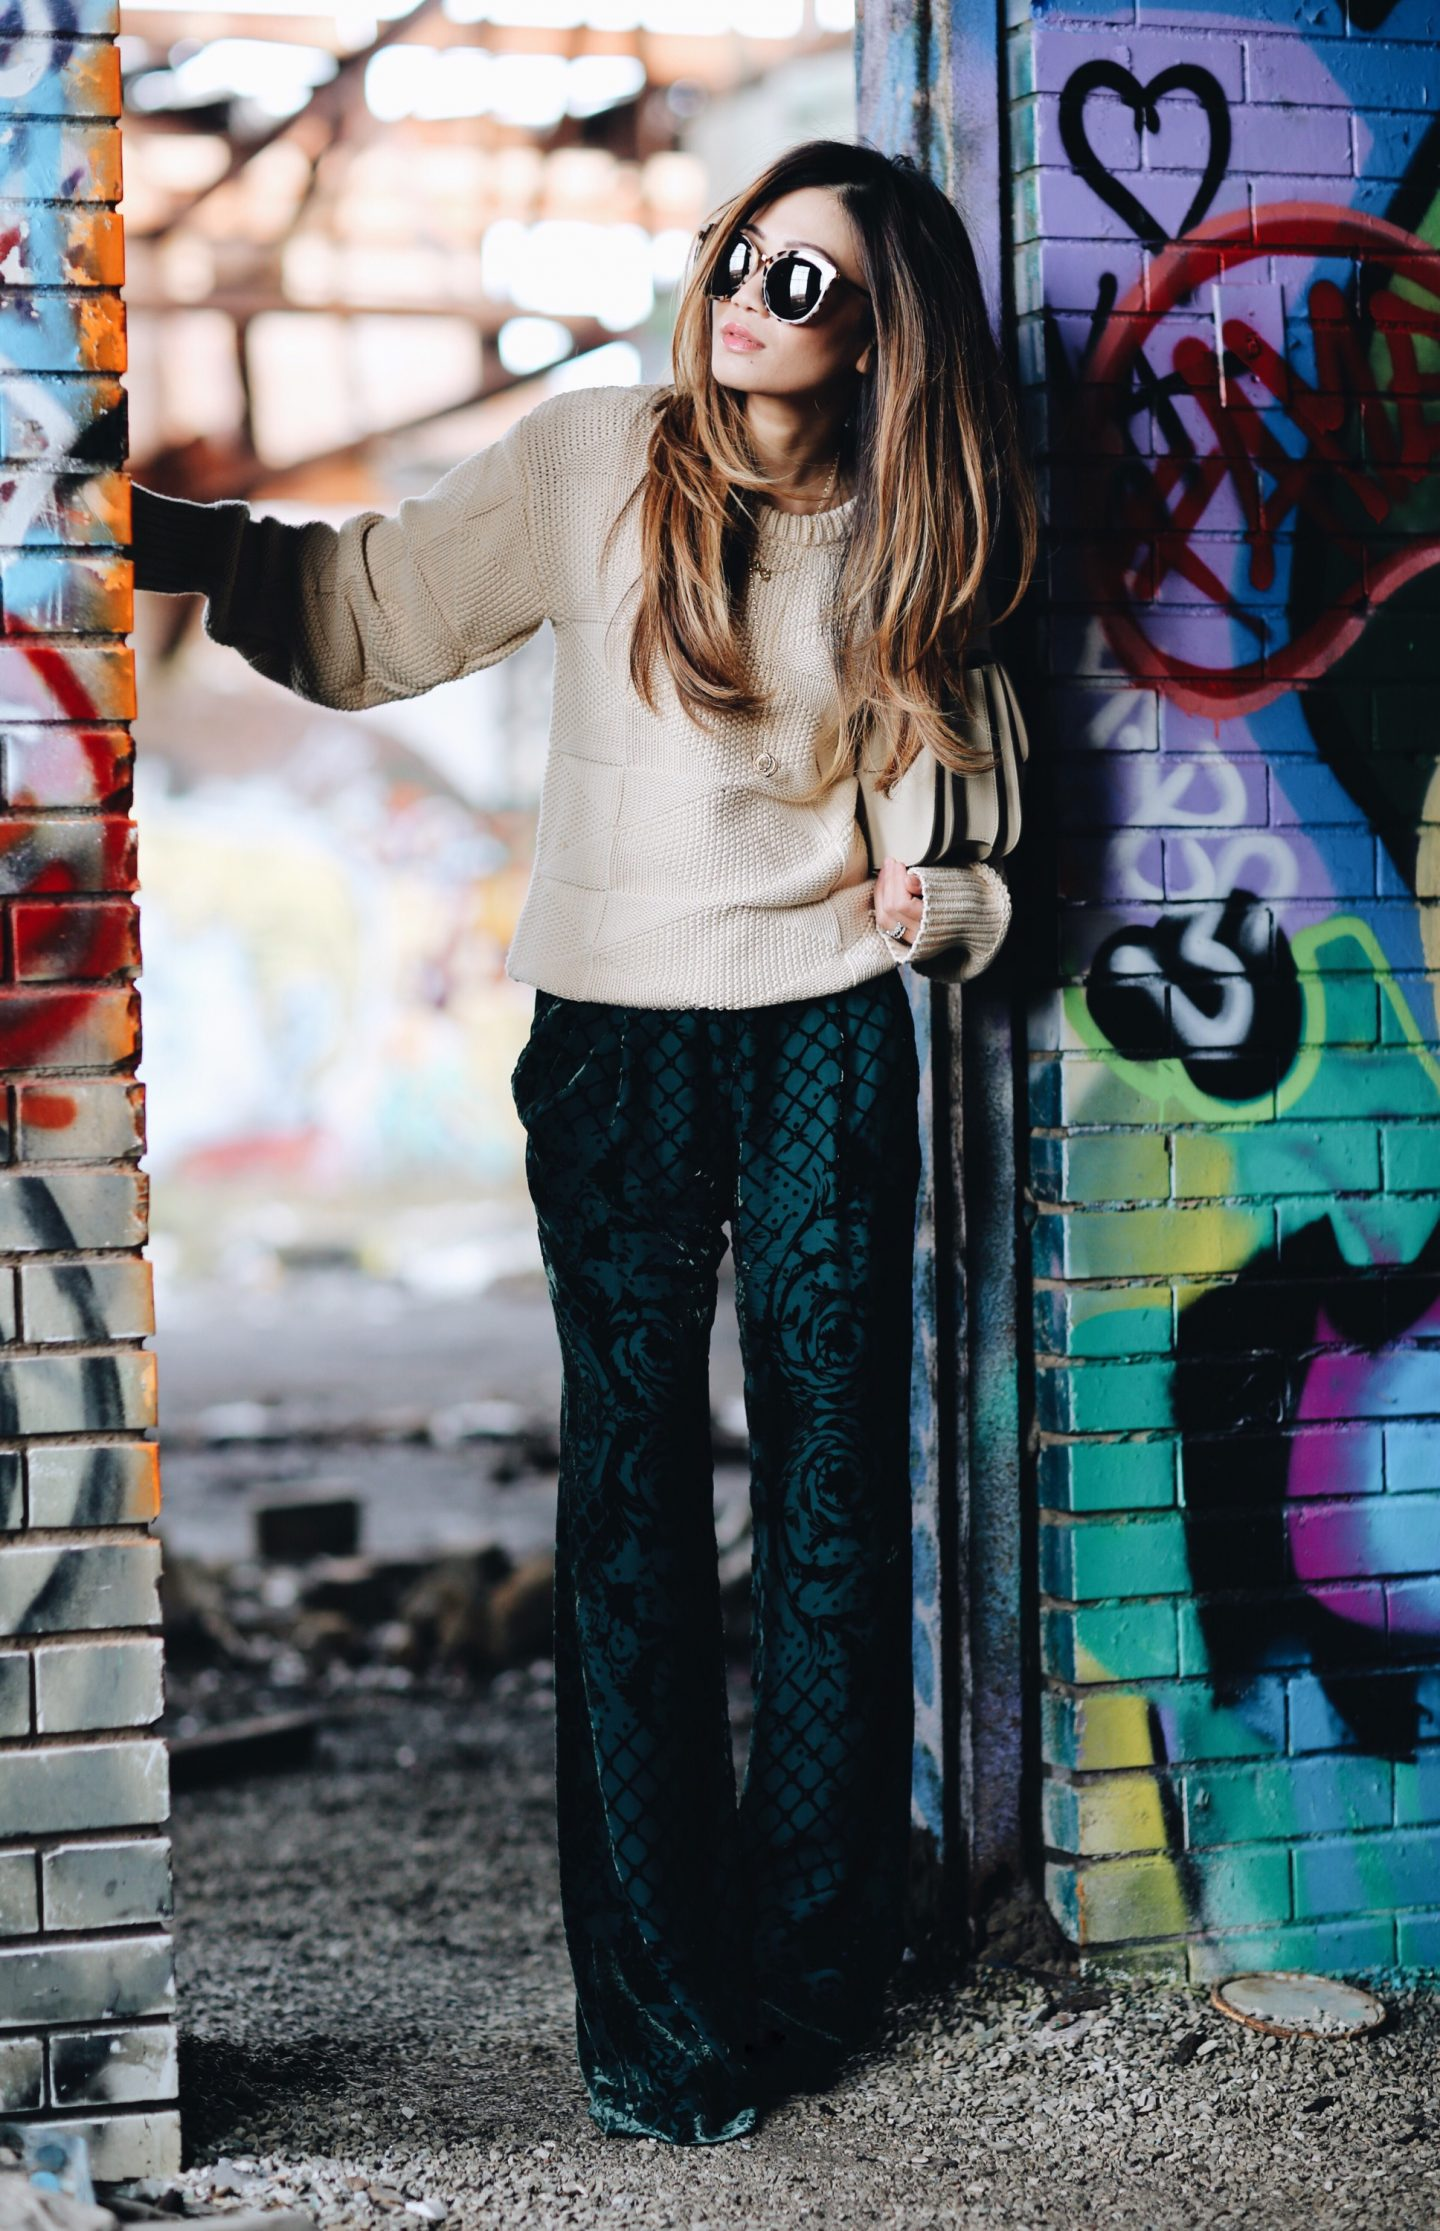 knit_sweater_graffiti-5